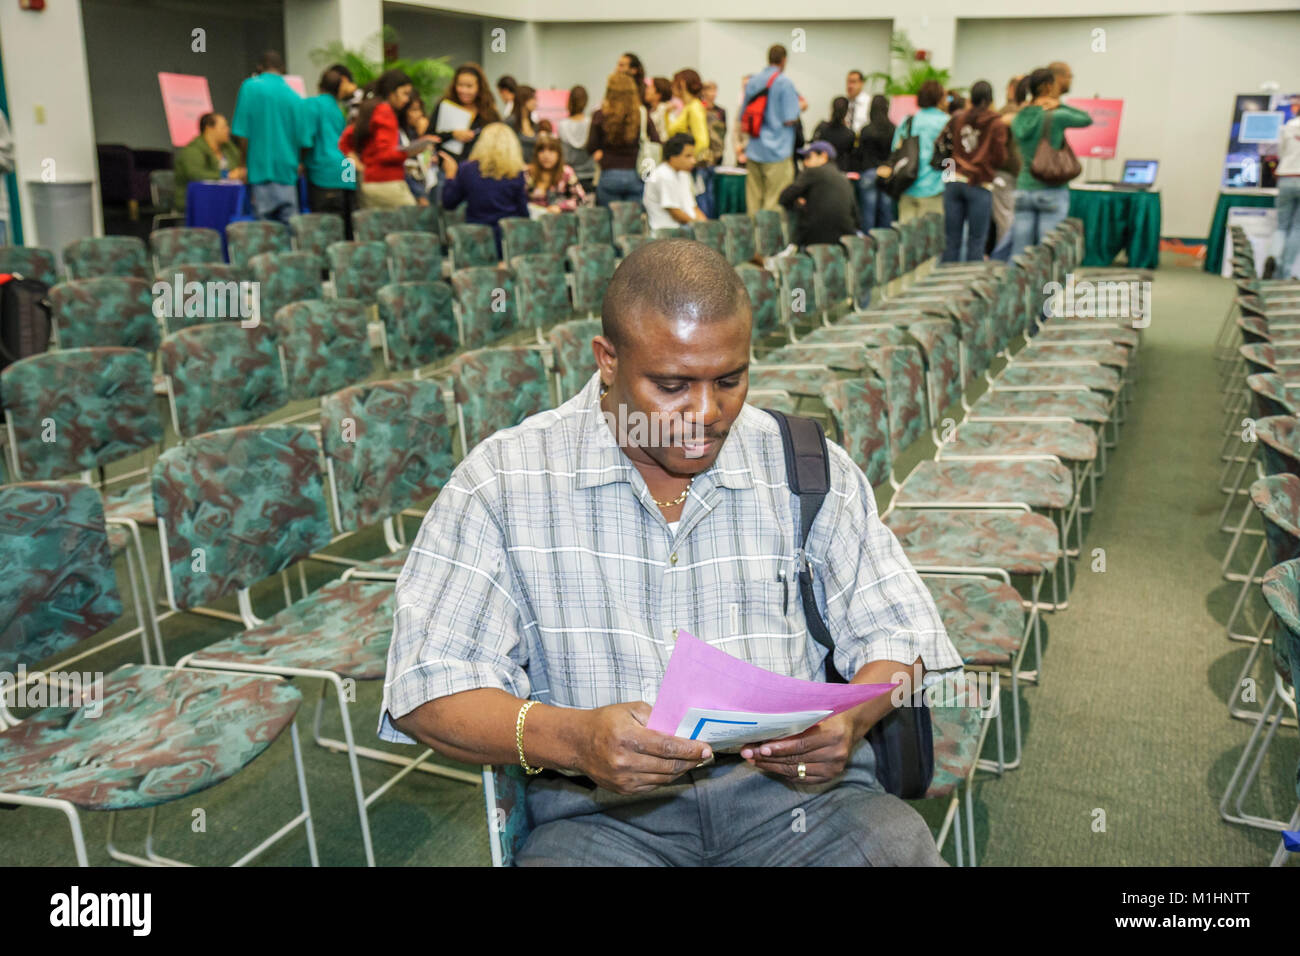 courses recruiter orientation counselor Black man empty chairs rows deciding thinking isolate information - Stock Image